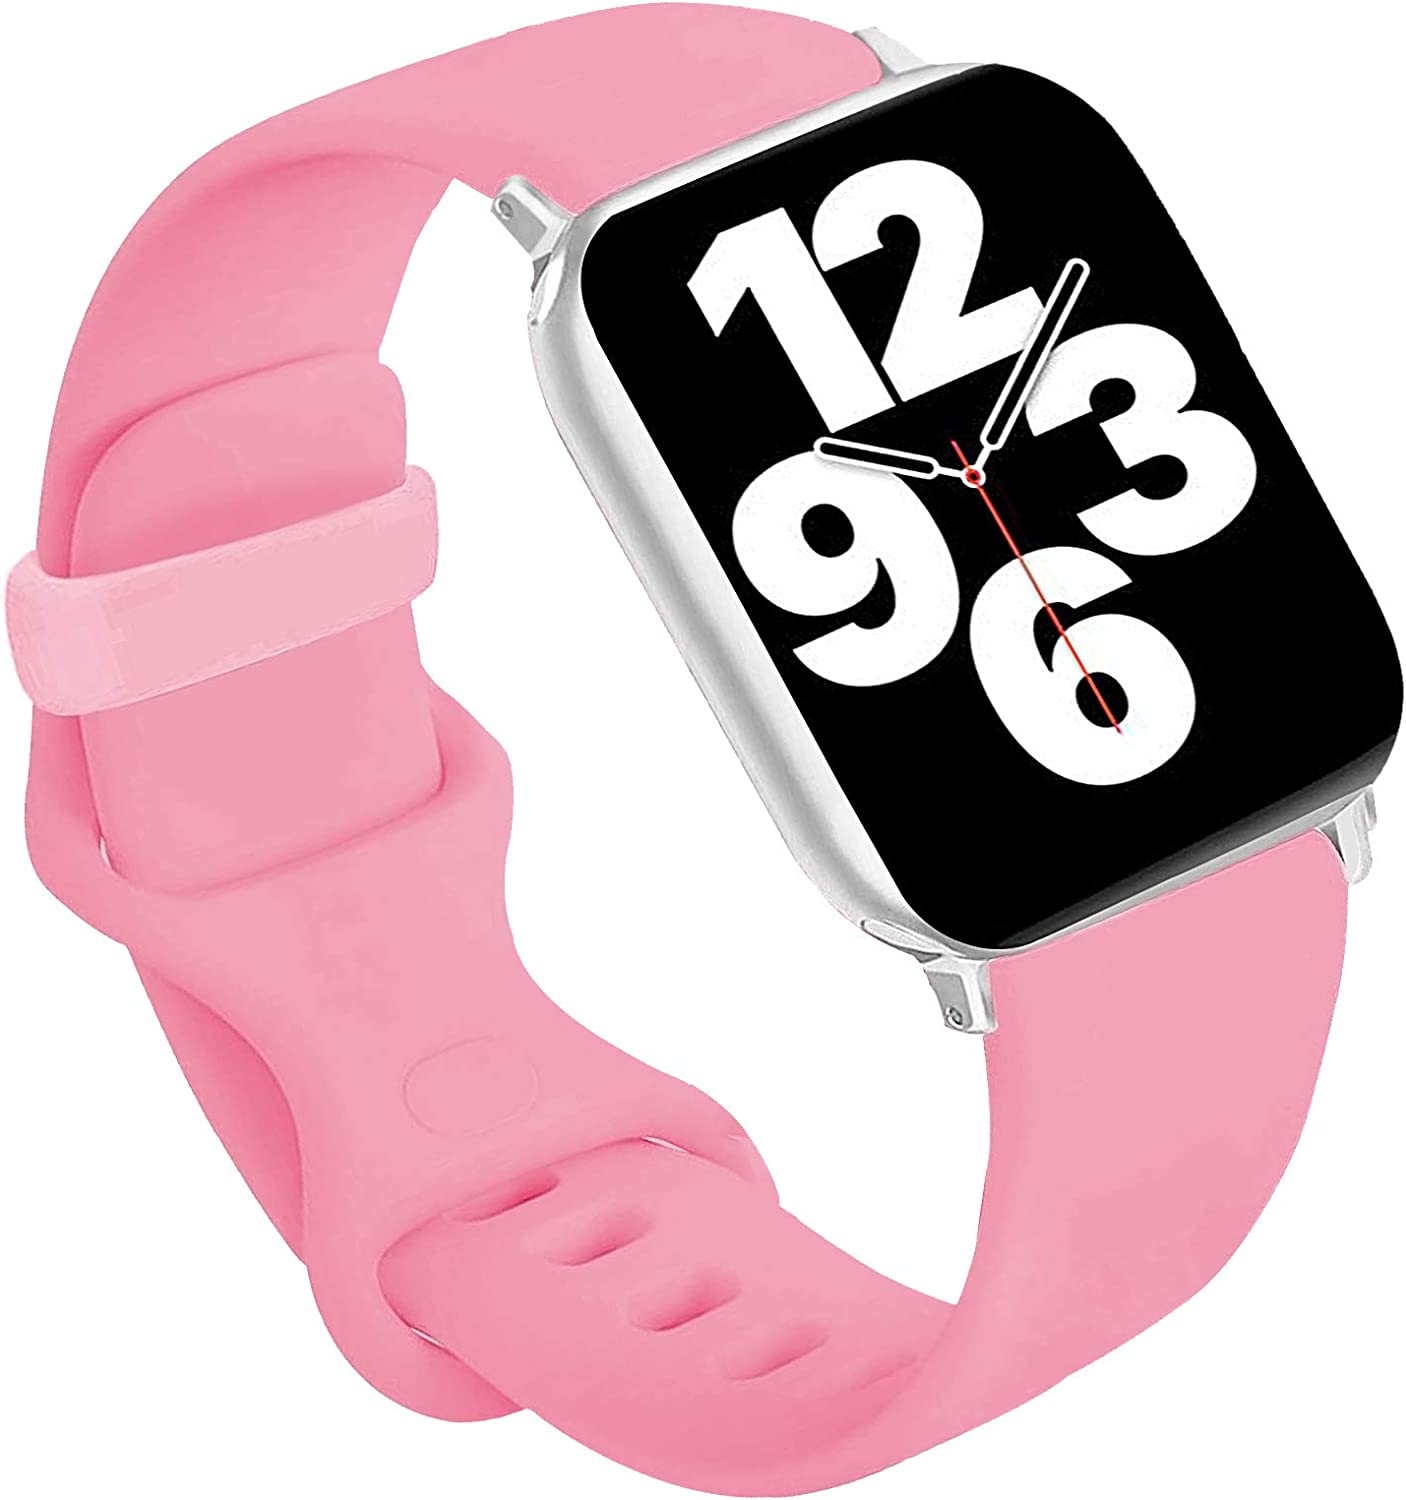 Idon Sport Watch Band, Soft Silicone Replacement Sports Bands Compatible with Watch SeriesSE/Series6/5/4/3/2/1 38MM 40MM for Watch All Models (Light Pink,38MM M/L)